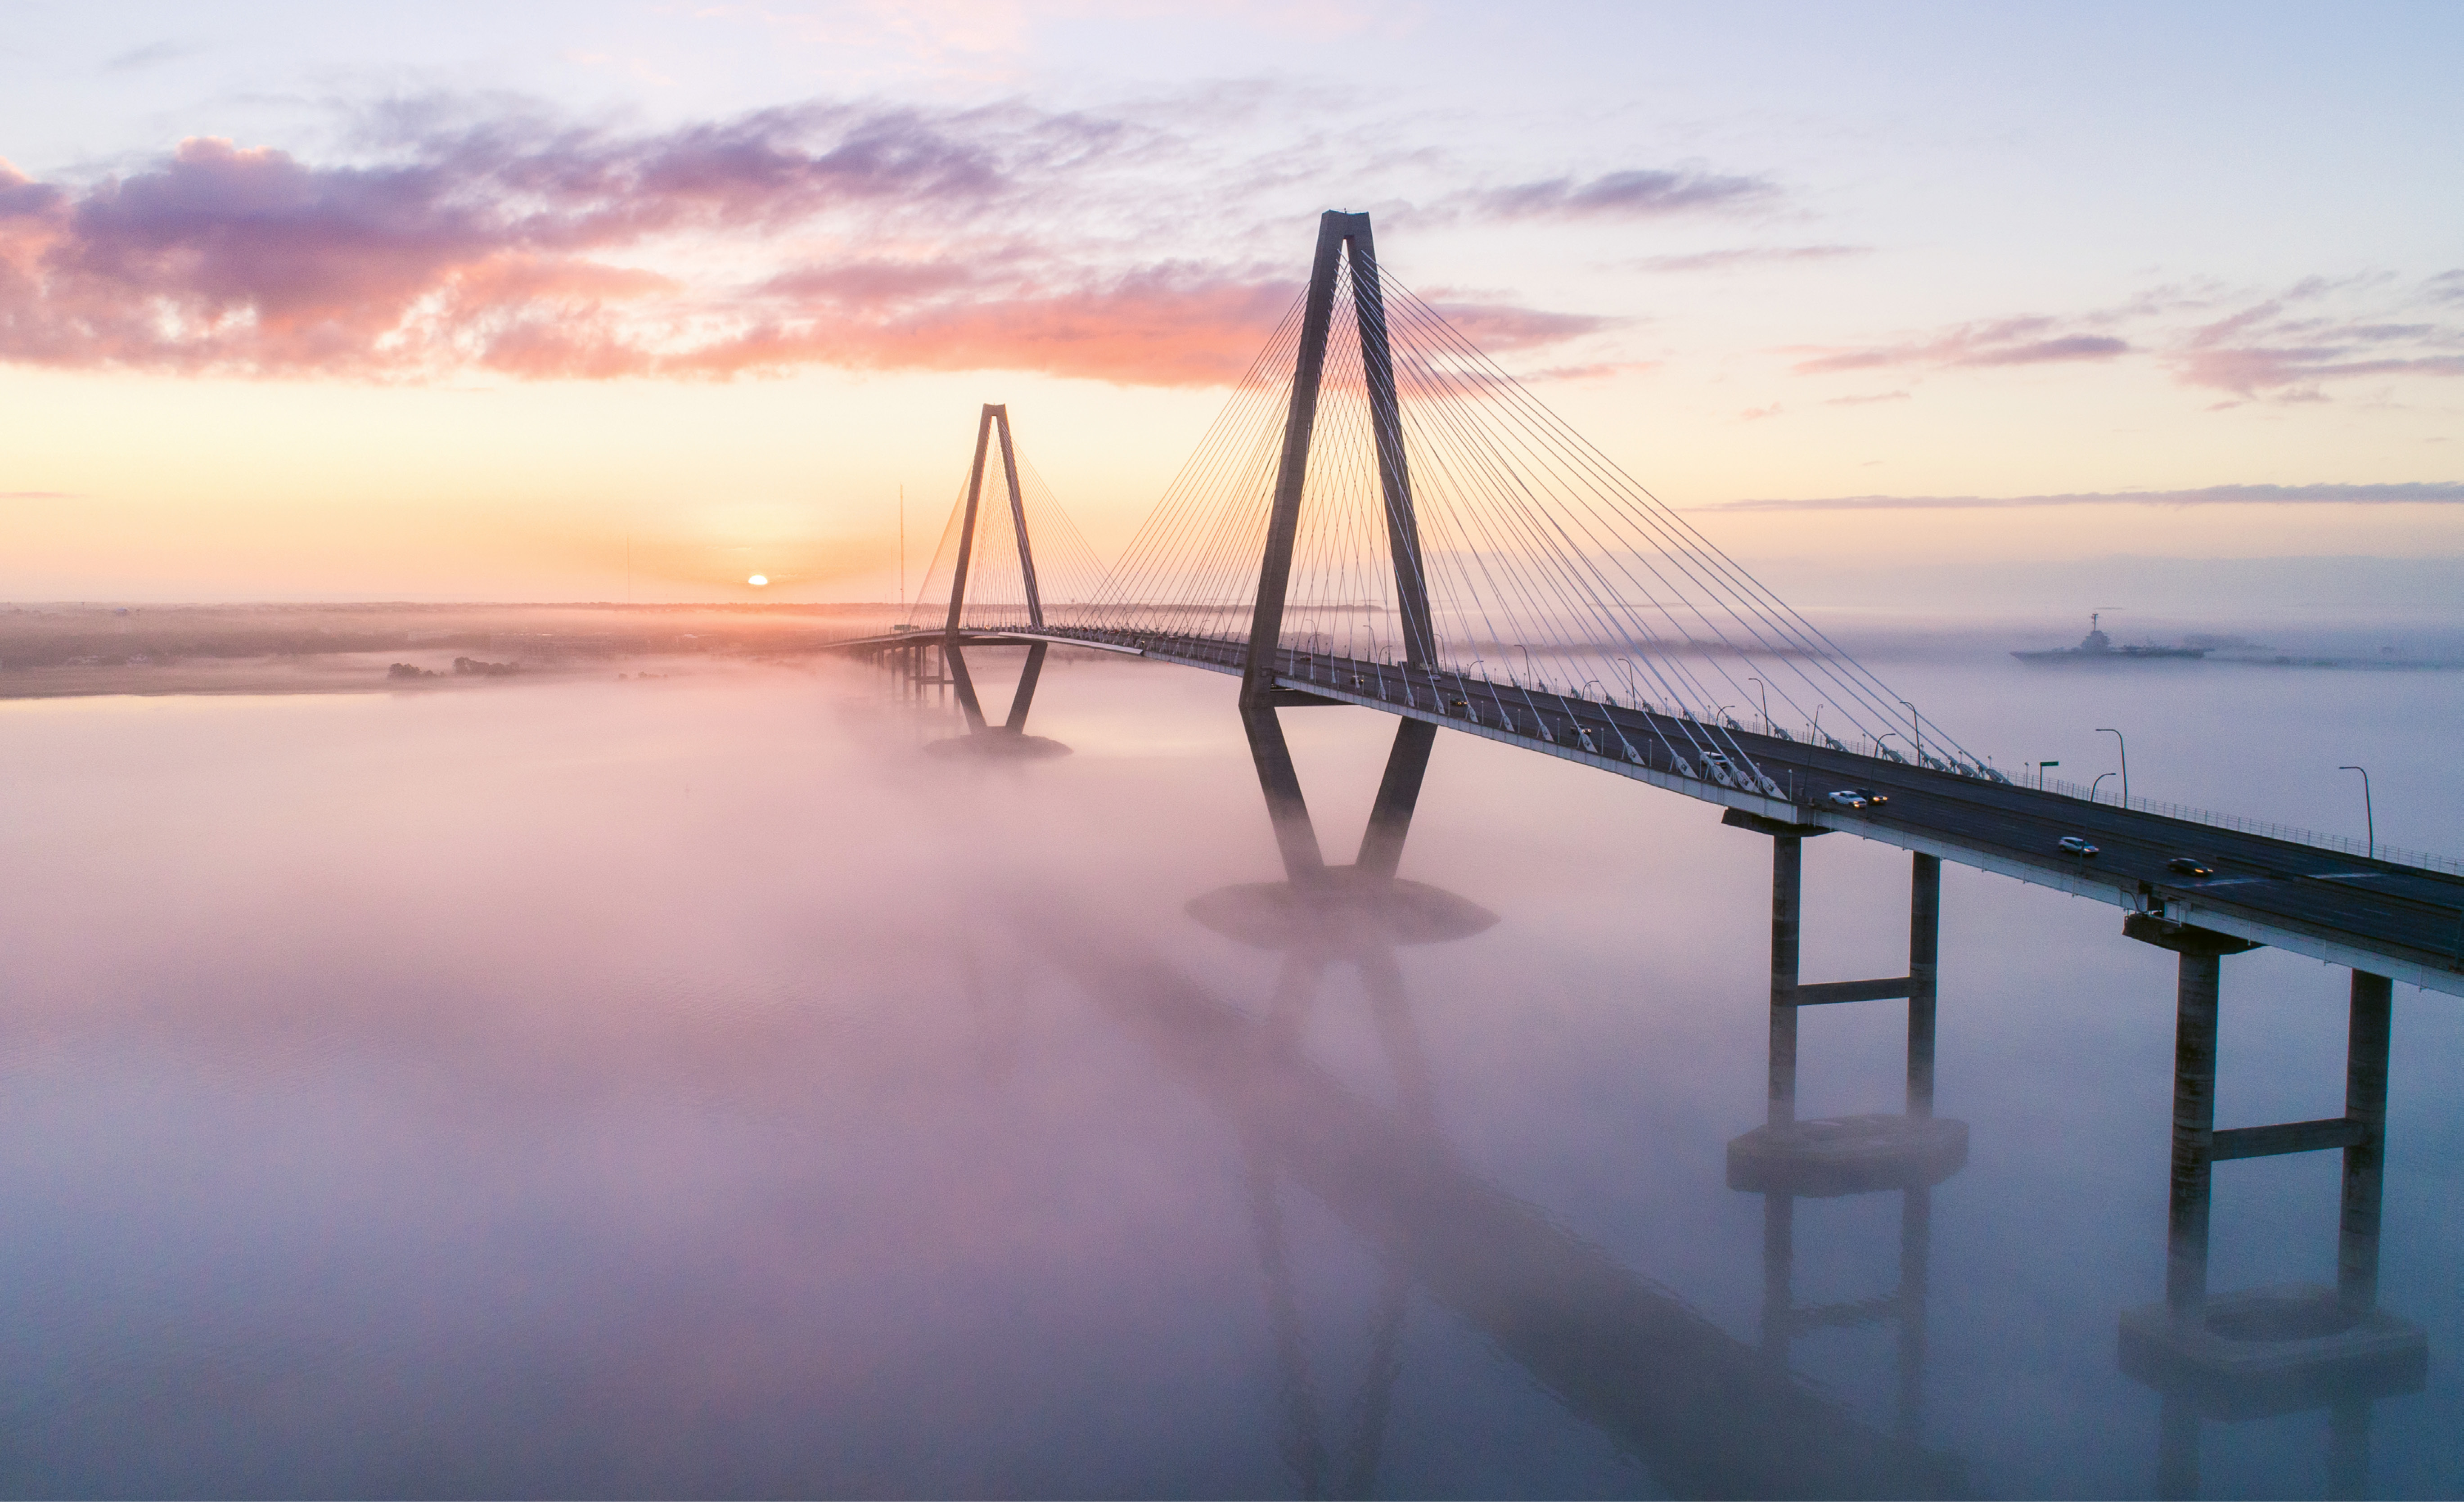 """Sea Fog at Sunrise"" {Altitude: 255 feet} In late February, a blanket of fog hovers below the Arthur Ravenel Bridge, reflecting the sunrise."